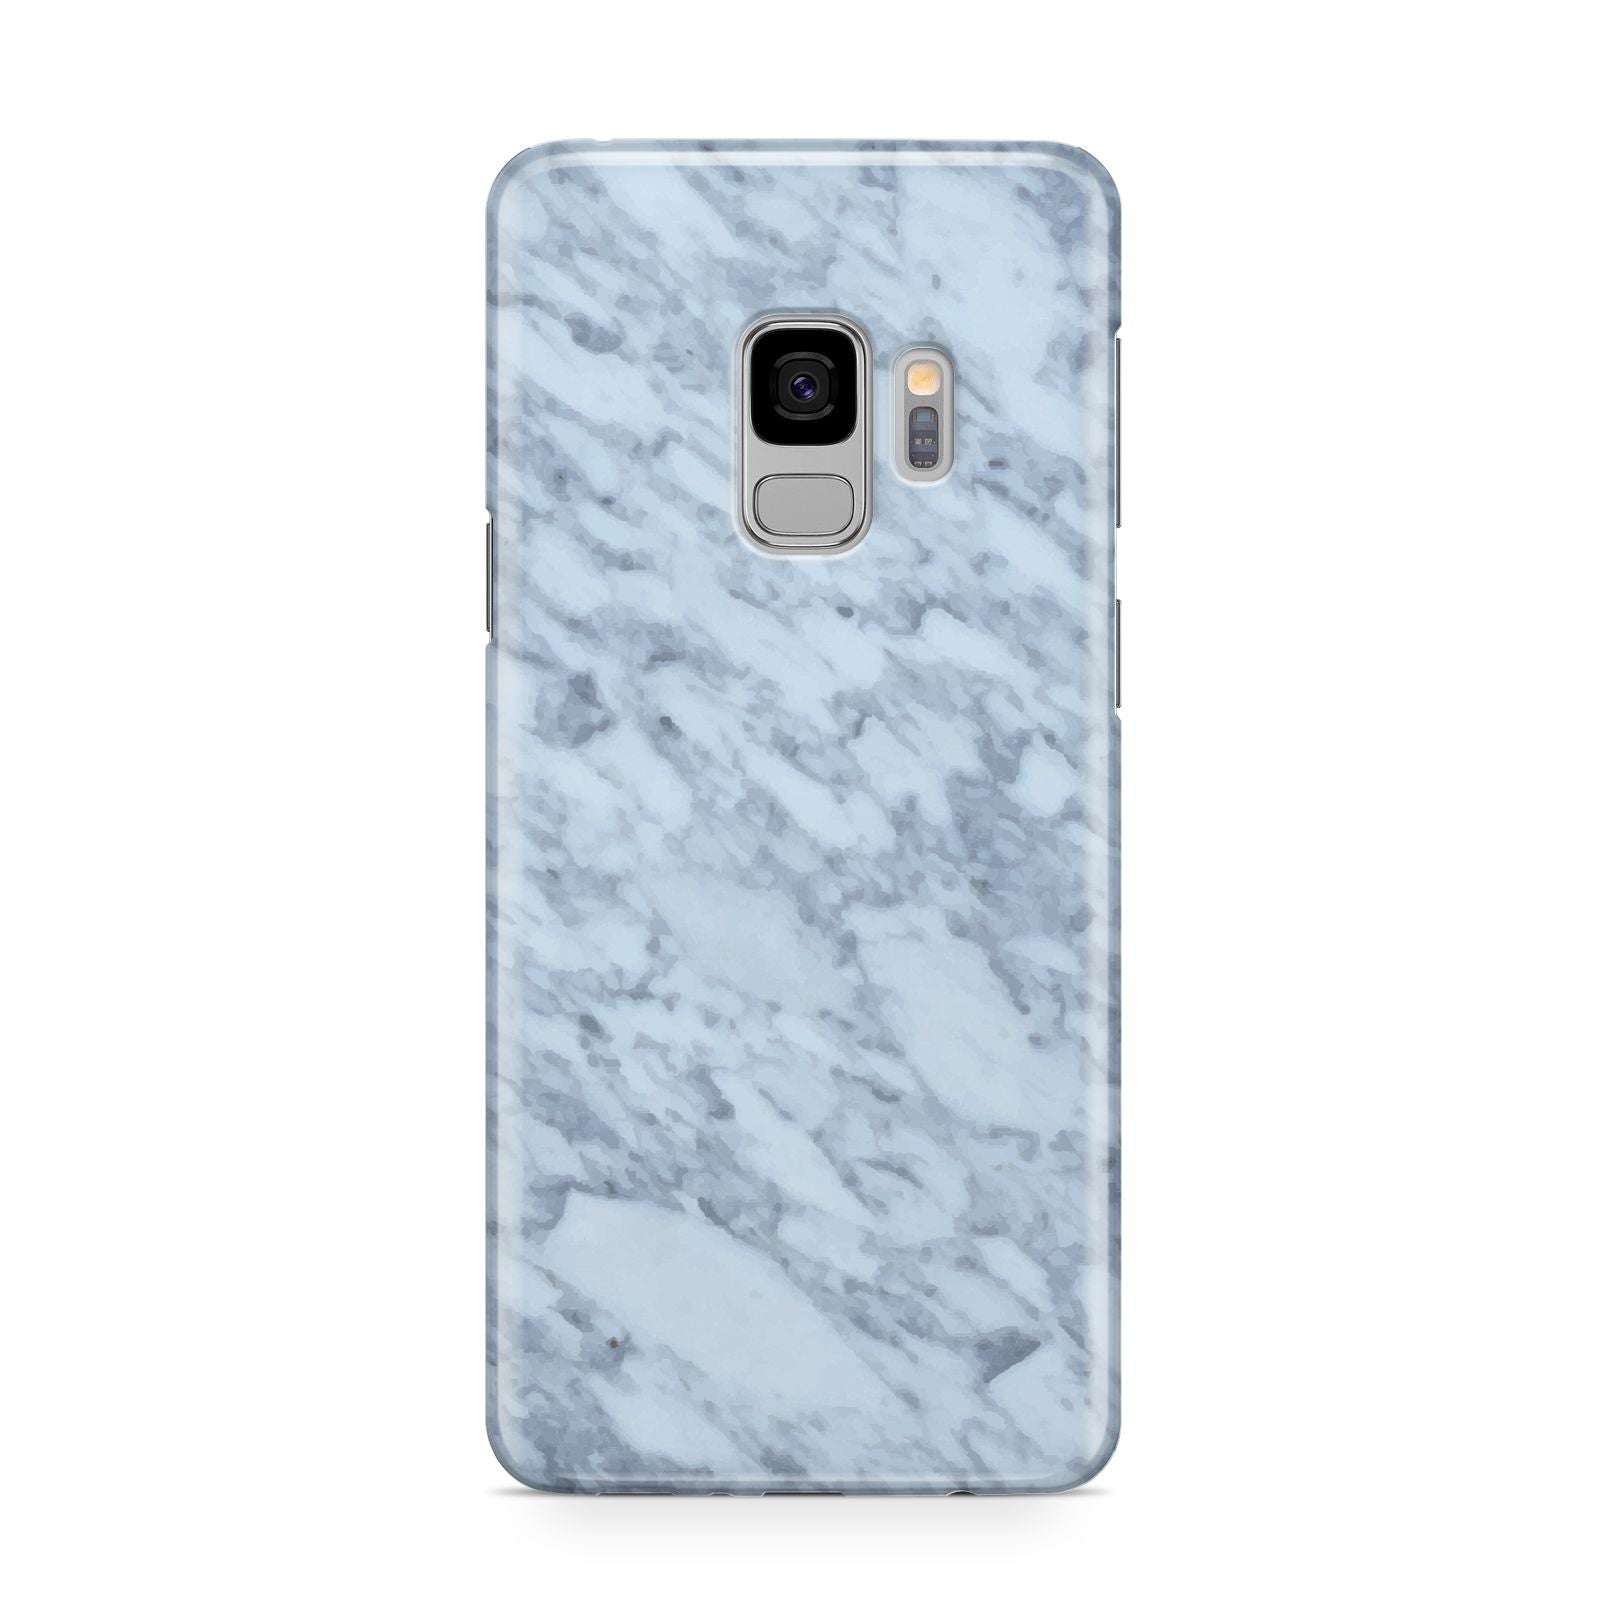 Faux Marble Grey 2 Samsung Galaxy S9 Case